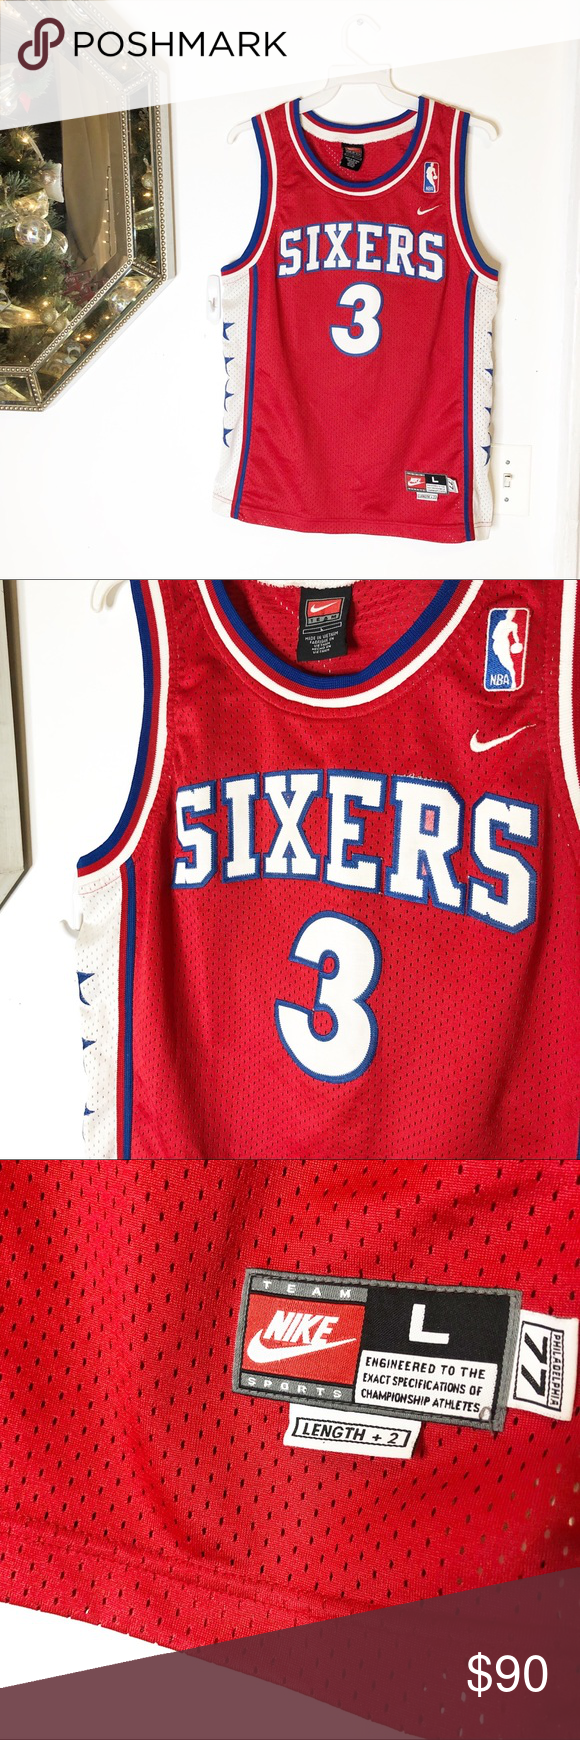 39ab76c7e Vintage Nike Allen Iverson Sixers All Star Jersey Vintage Nike Allen  Iverson Sixers All Star Jersey Mens Large Philadelphia 77 100% Authentic  Guaranteed!